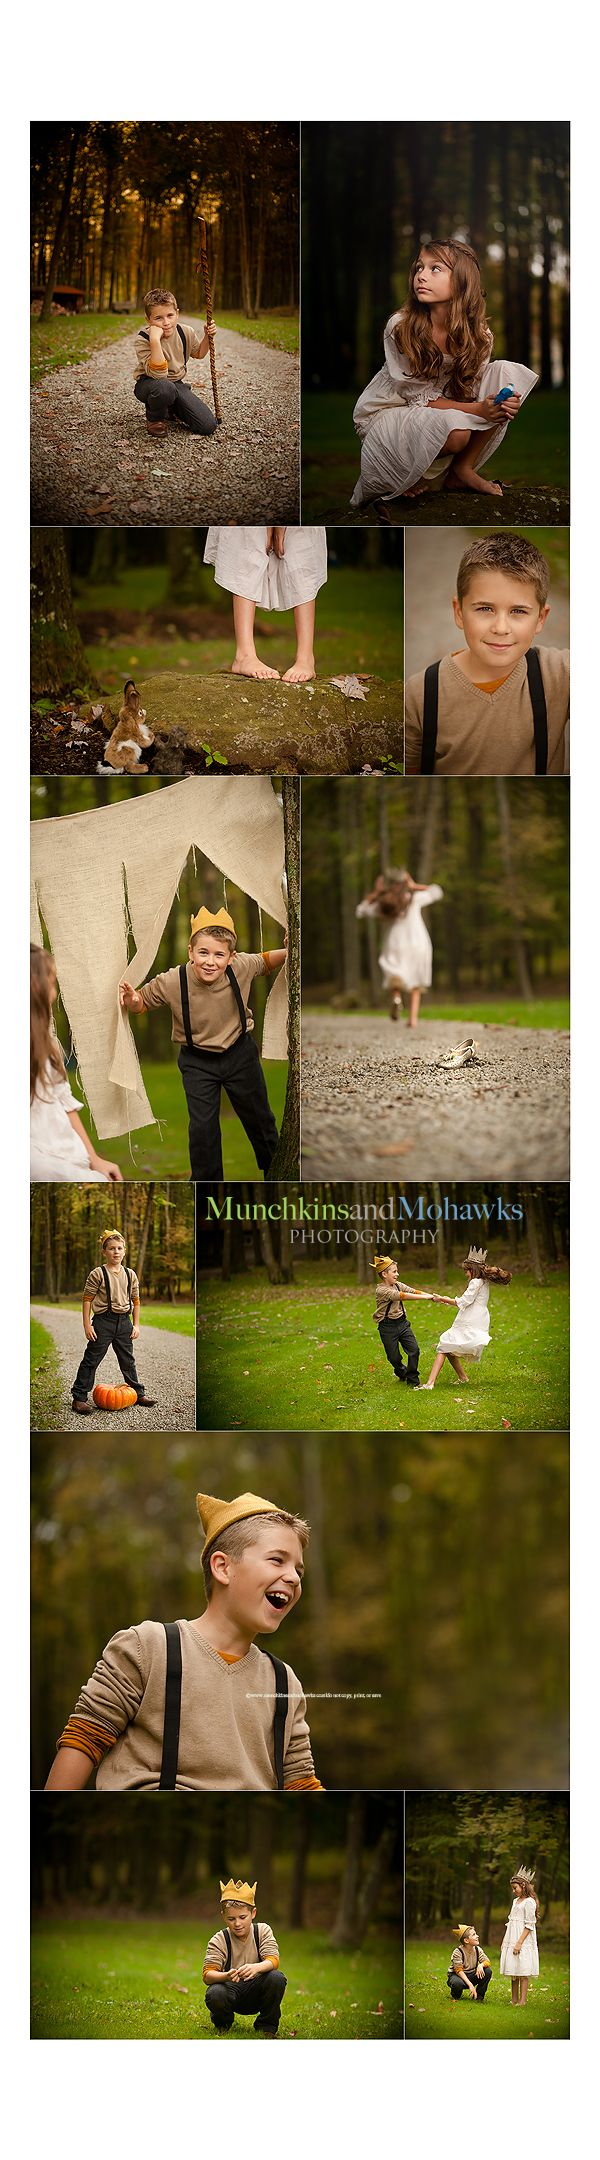 """Cinderella shoot.  I've been wanting to do a """"personal"""" themed shoot for a while now.  I find it interesting how this one uses older """"kids"""" than you might normally picture for a themed shoot."""